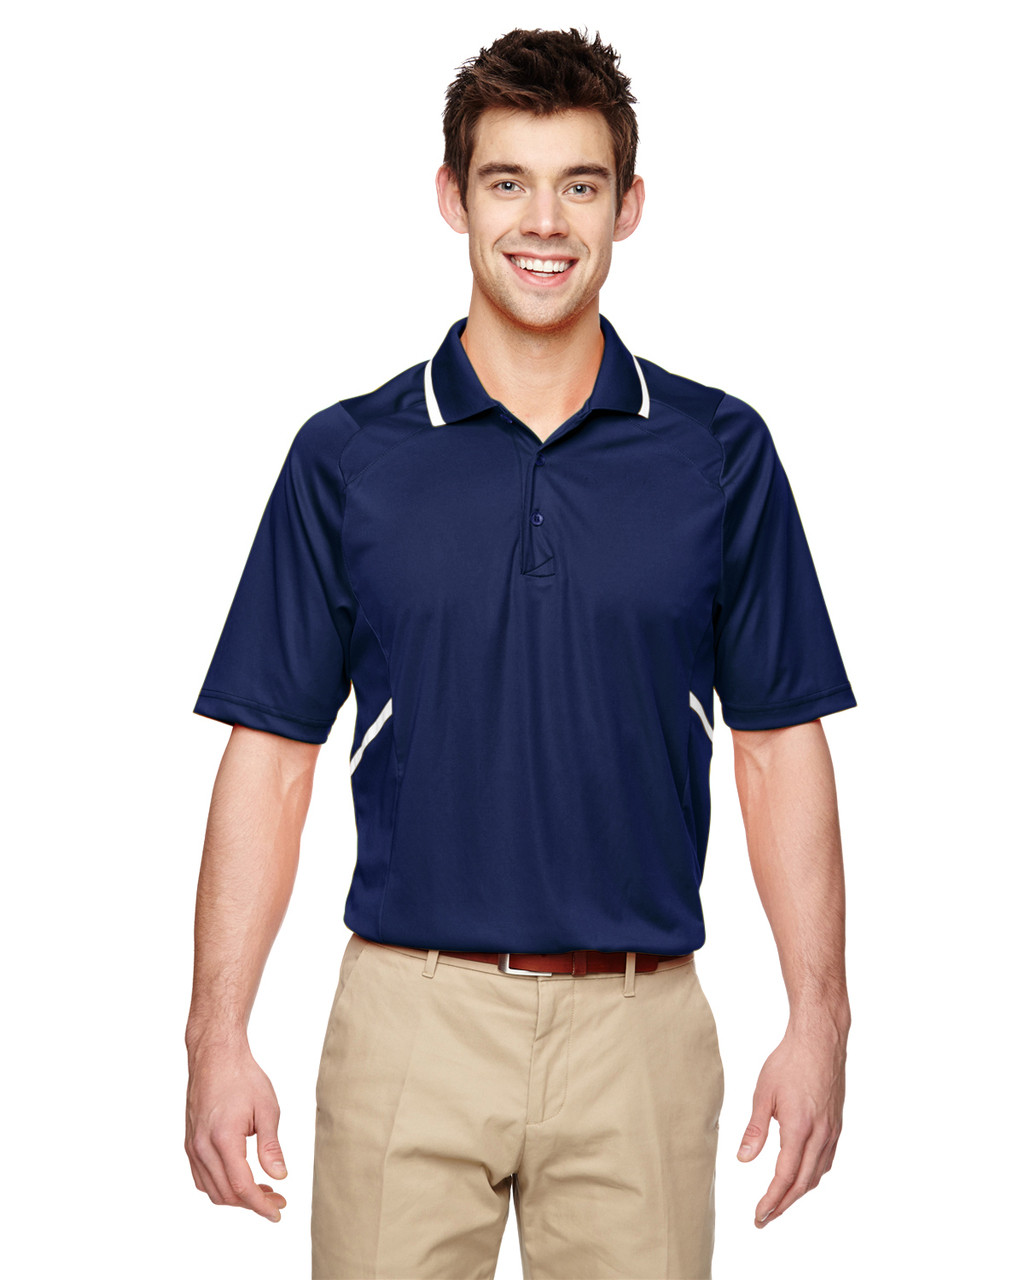 Classic Navy - Extreme Eperformance Propel Interlock Polo Shirt with Contrast Tape